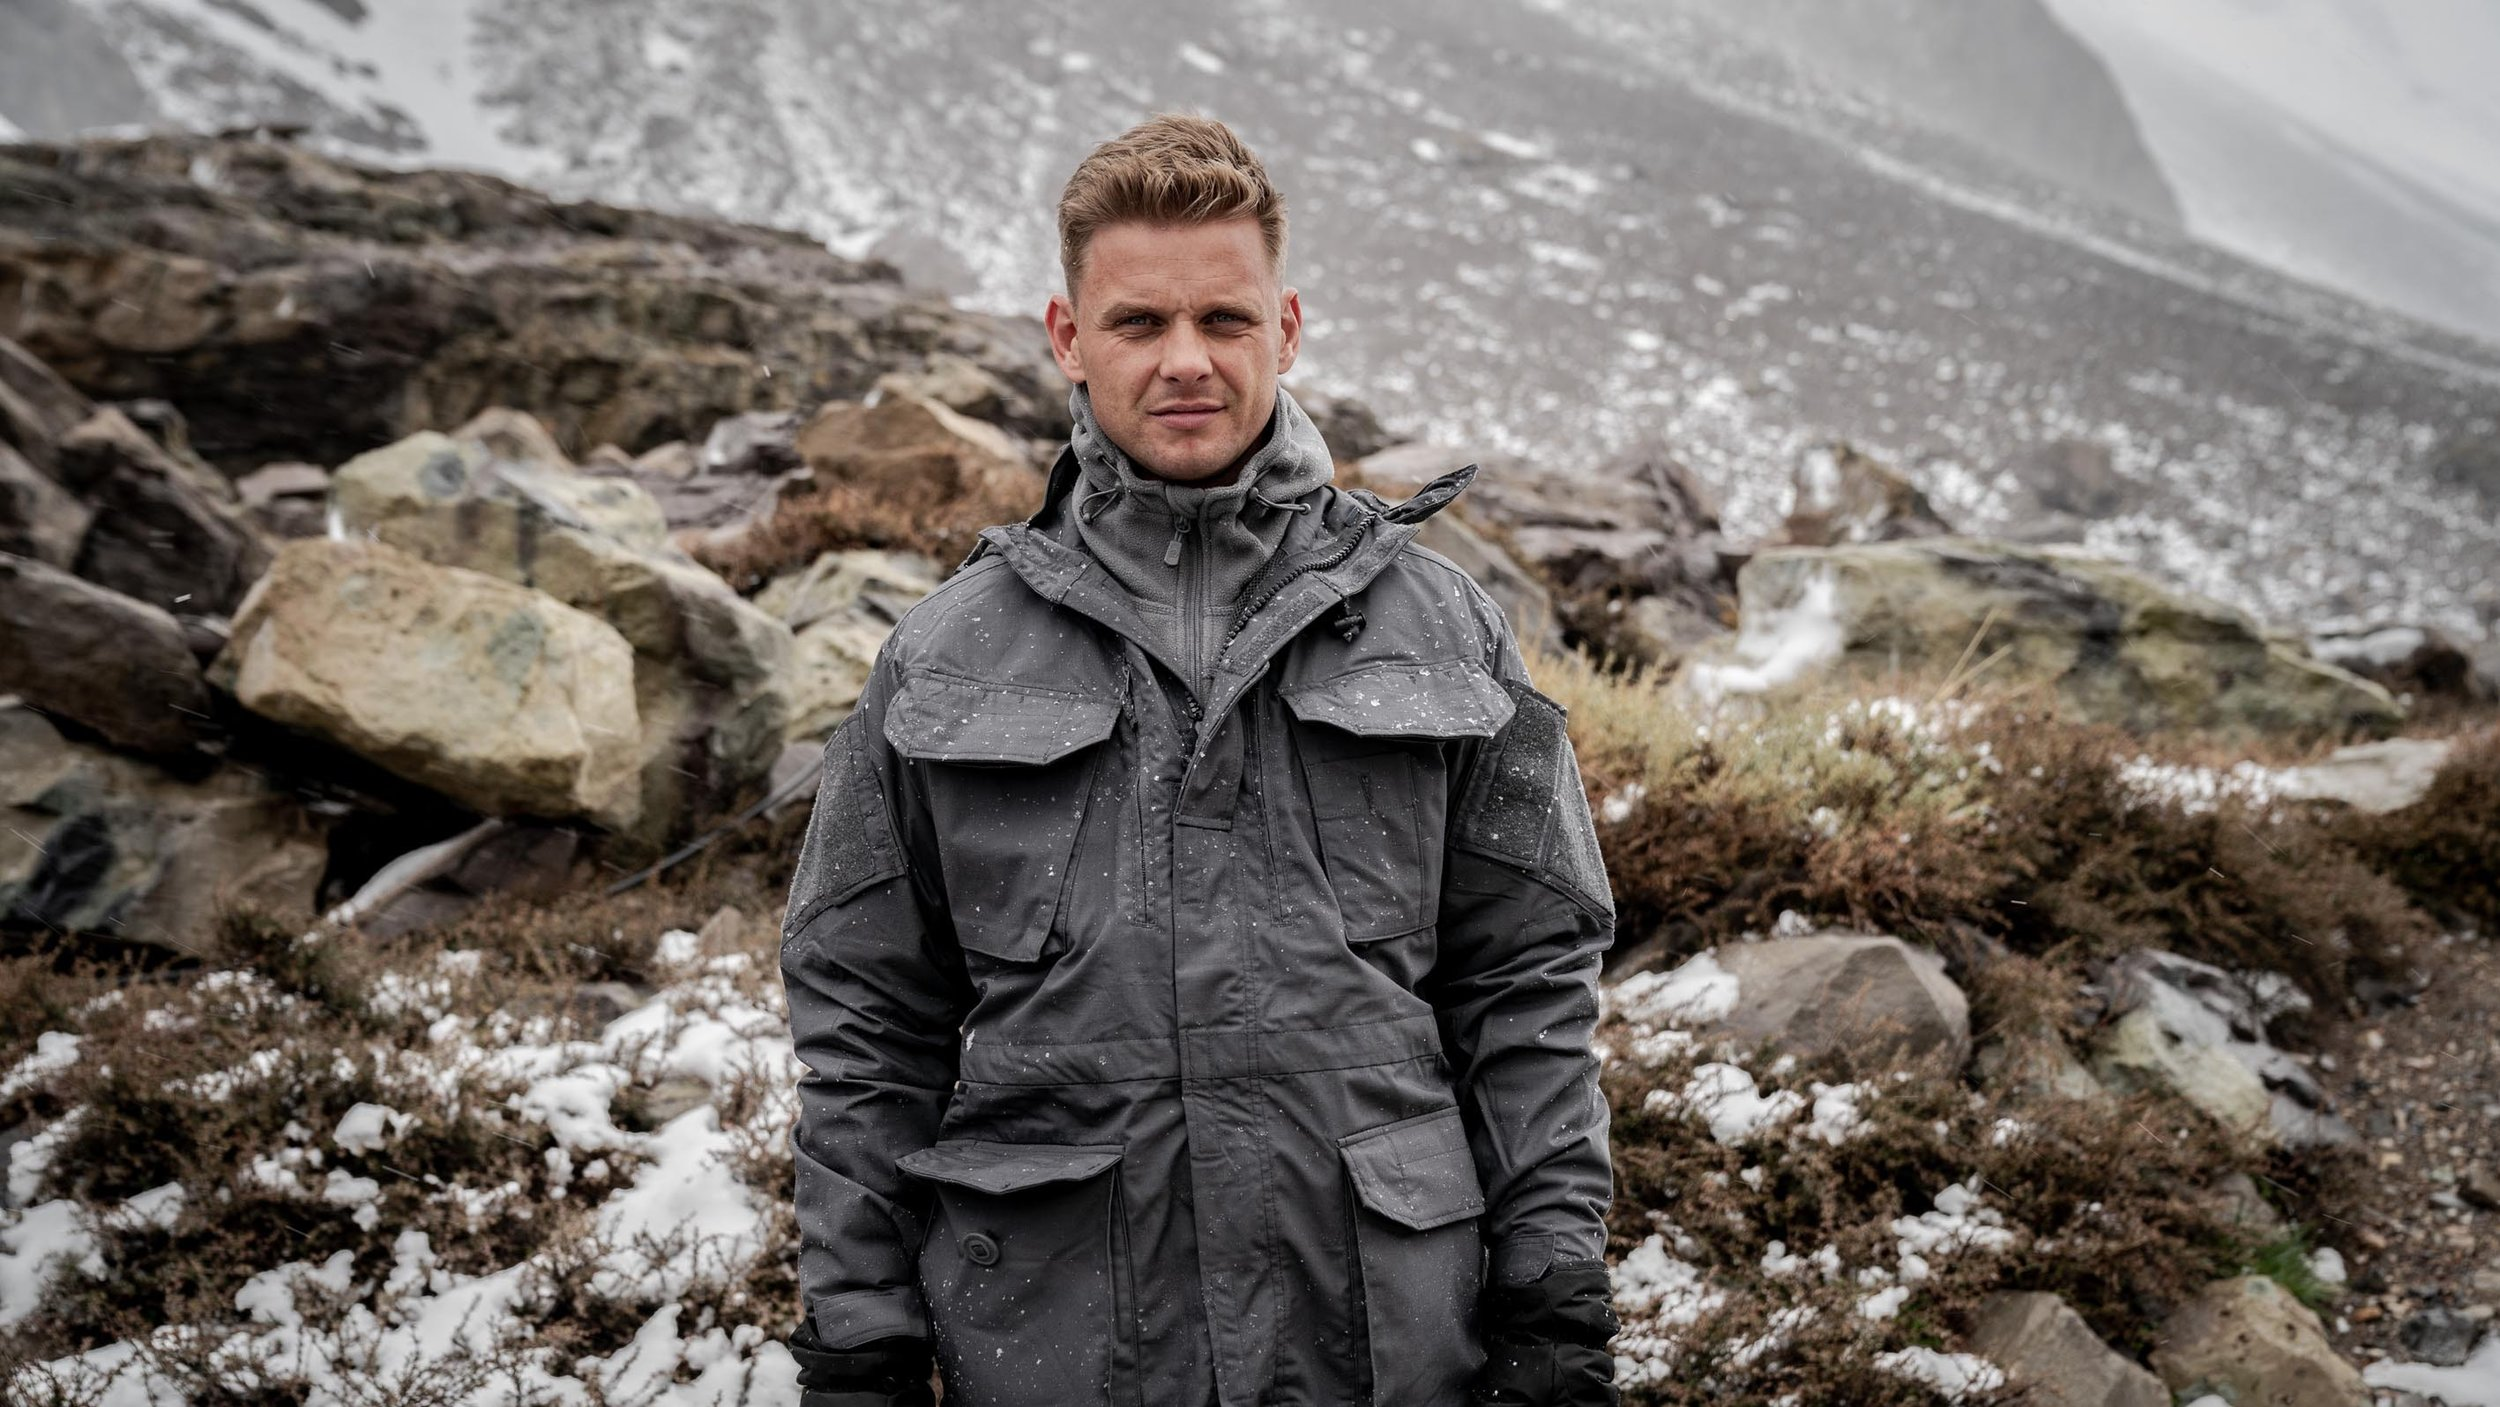 jeff brazier celebrity sas who dares wins.jpg